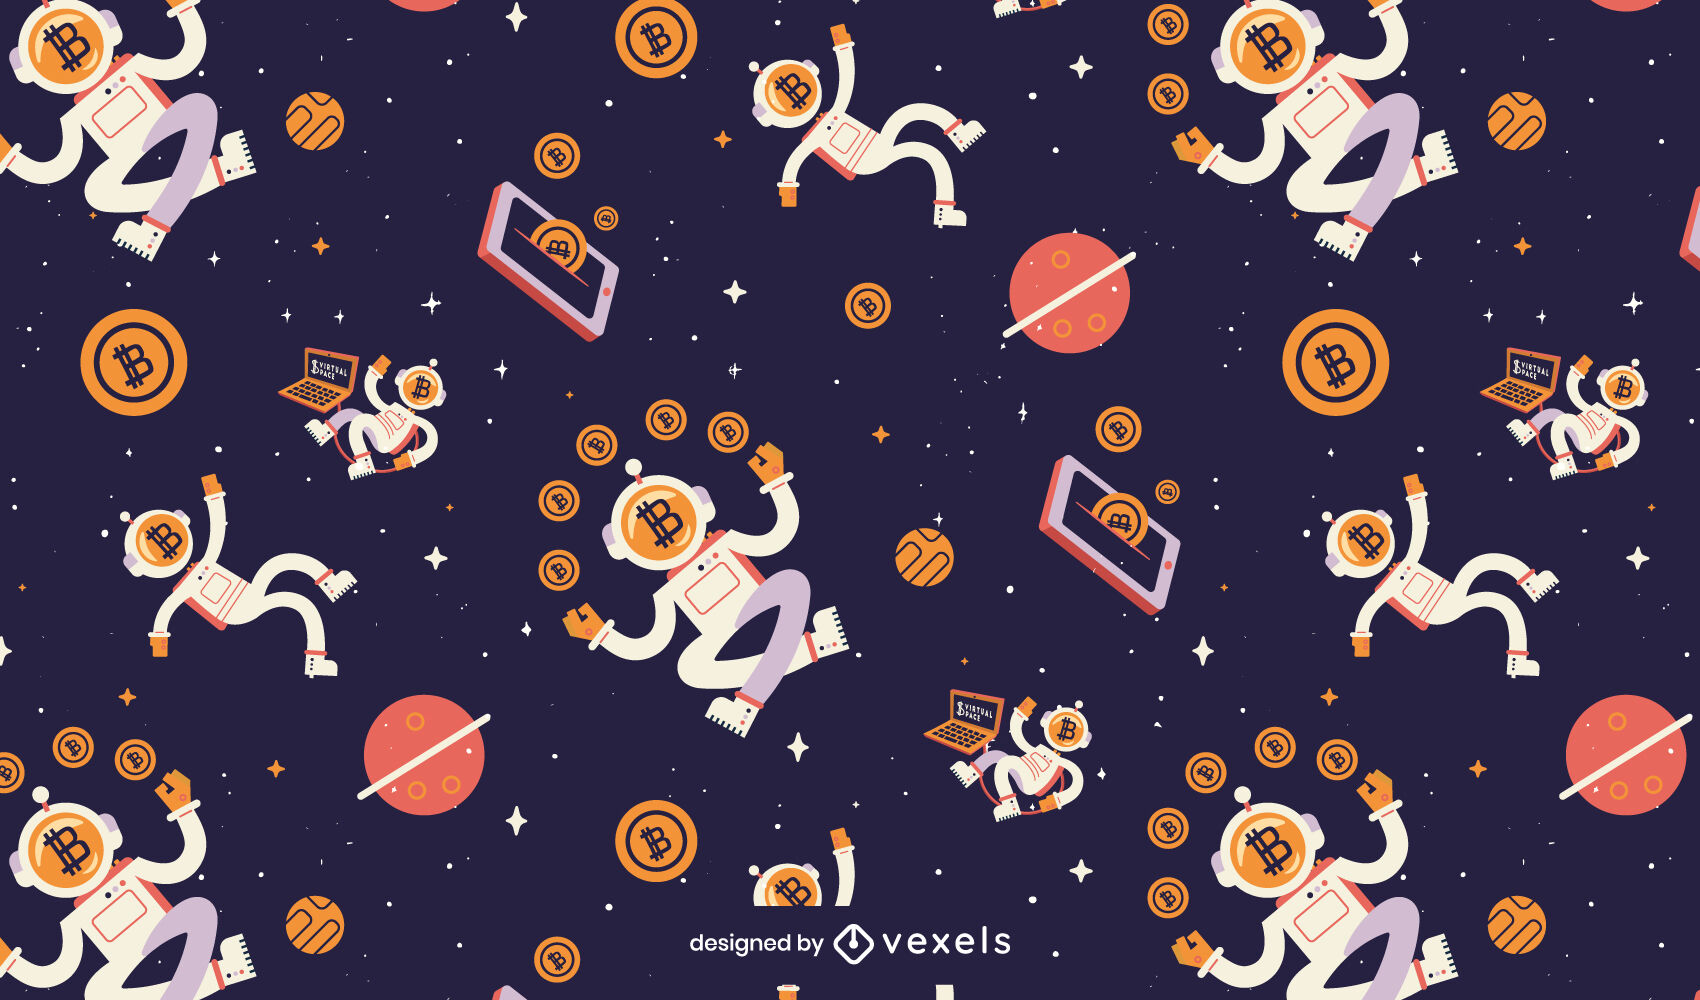 Bitcoins space pattern